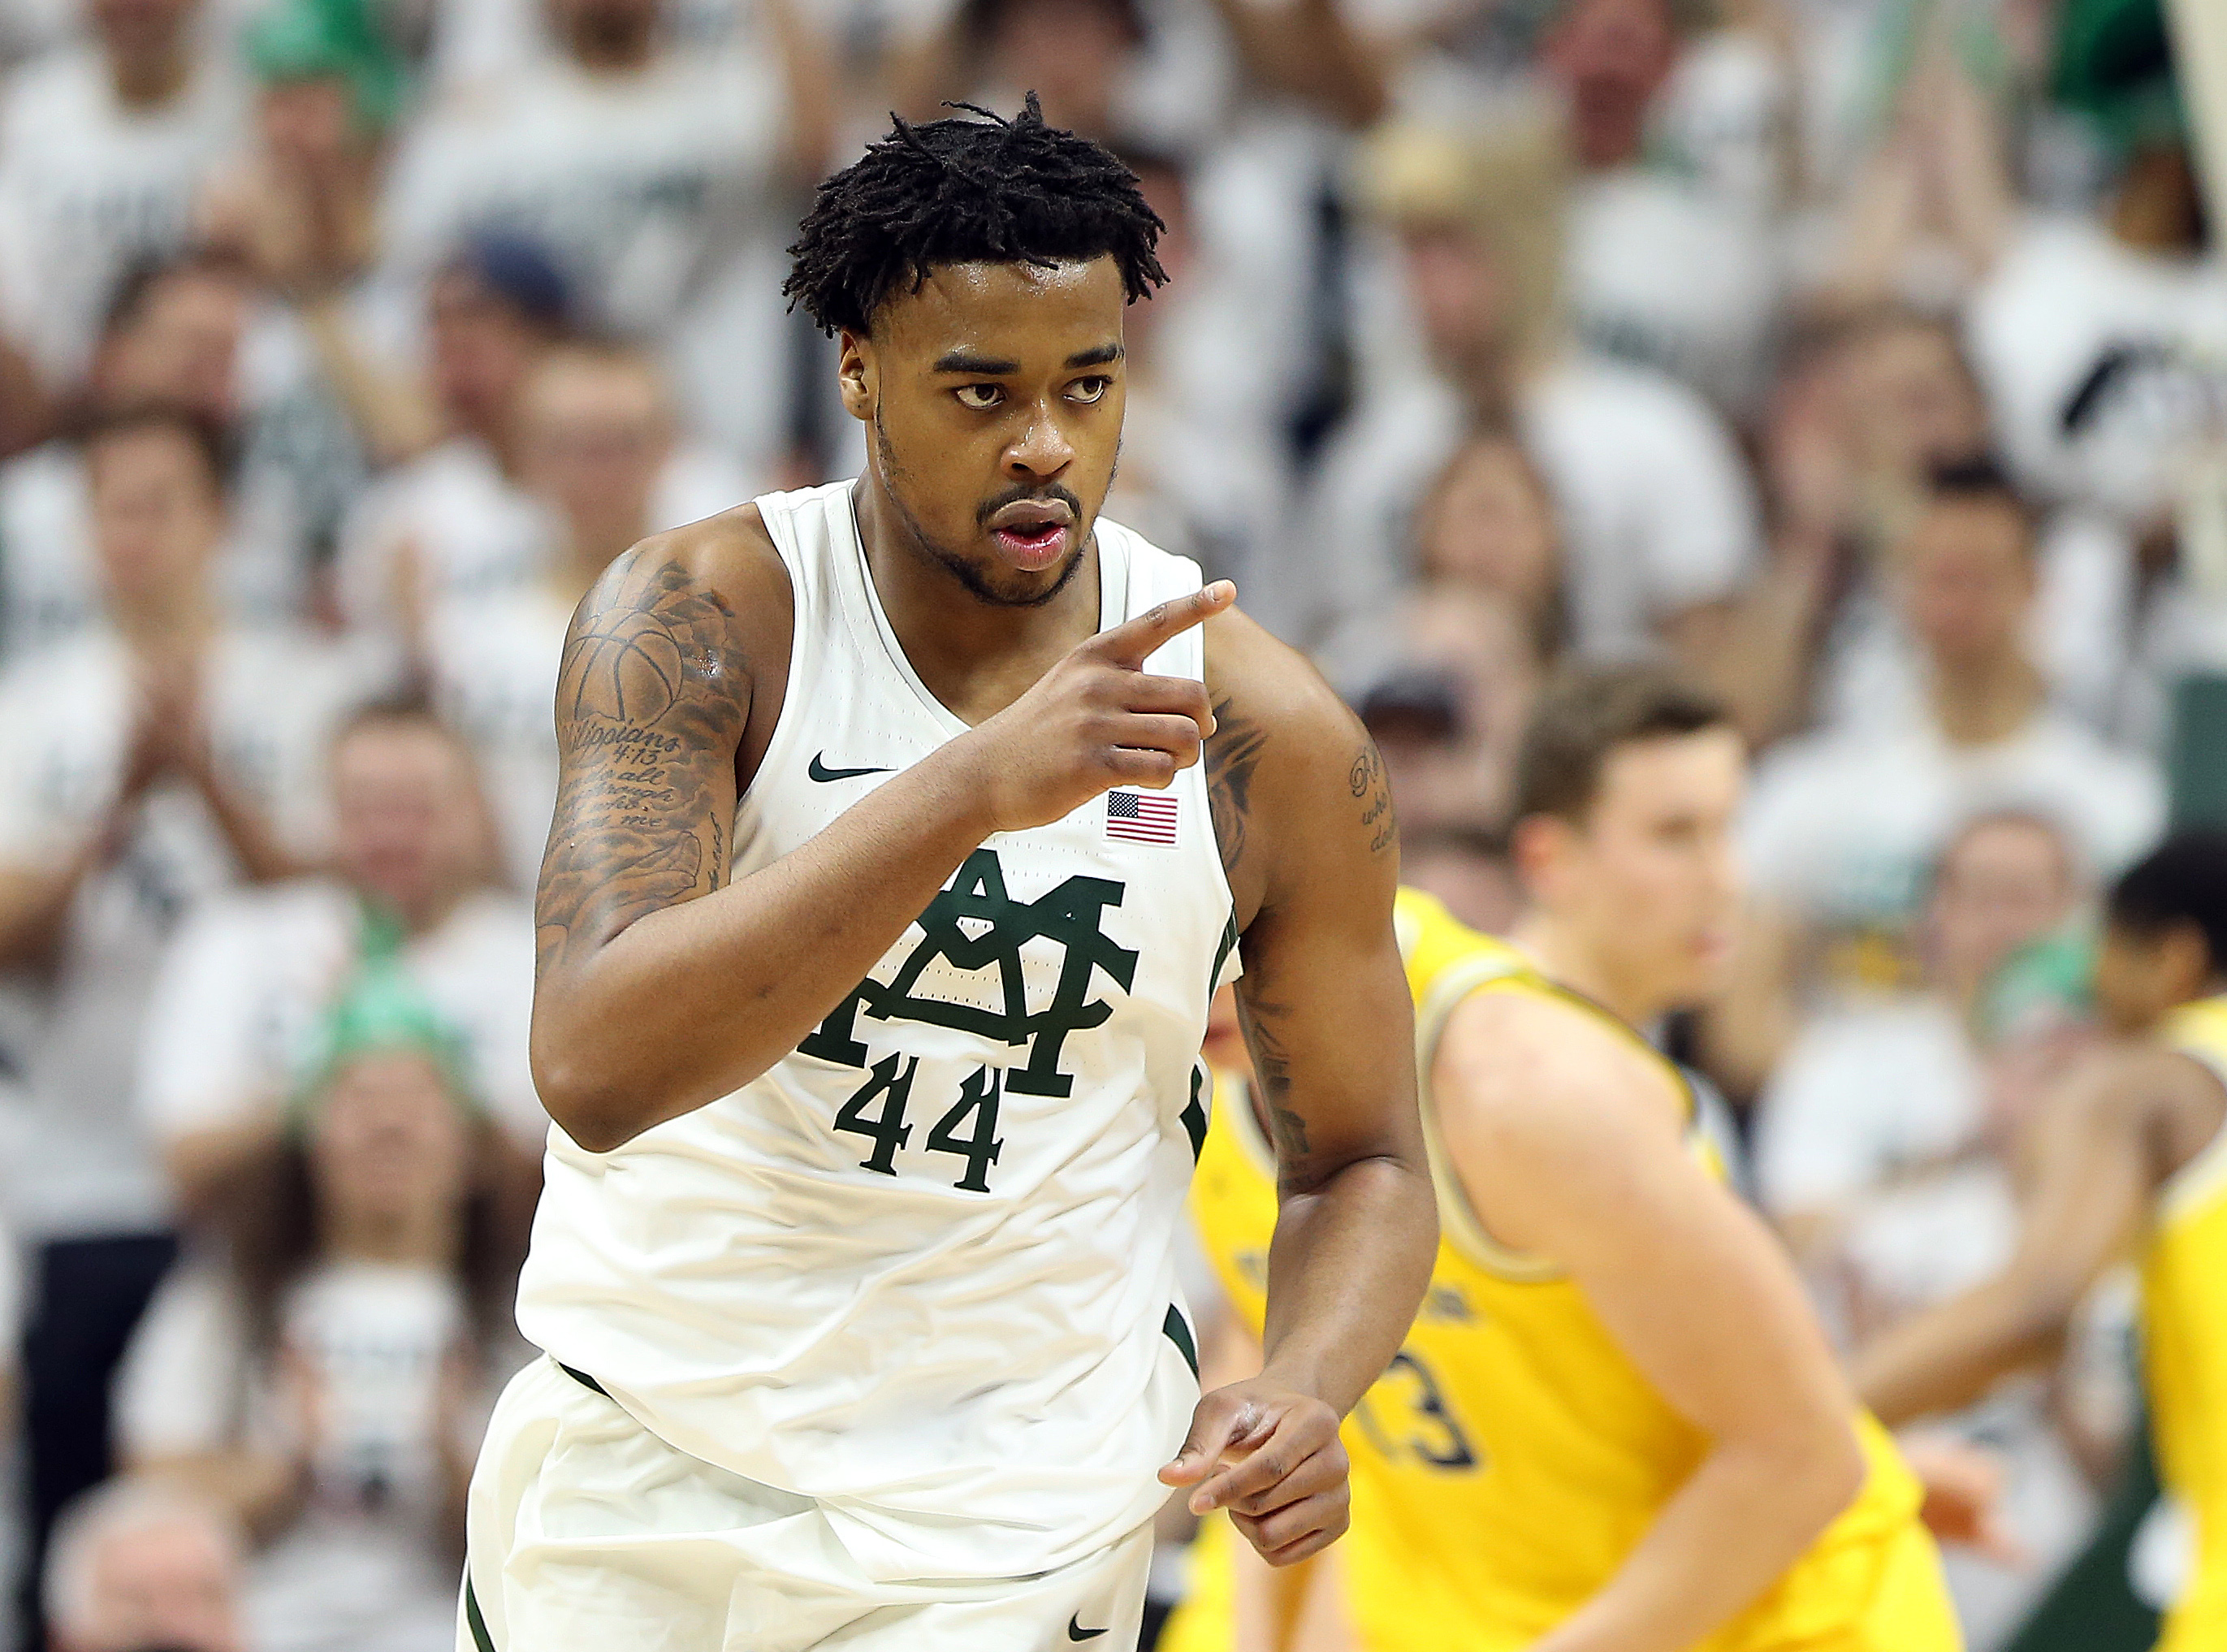 Jan 29, 2017; East Lansing, MI, USA; Michigan State Spartans forward Nick Ward (44) reacts to a play during the first half of a game against the Michigan Wolverines at the Jack Breslin Student Events Center. Mandatory Credit: Mike Carter-USA TODAY Sports